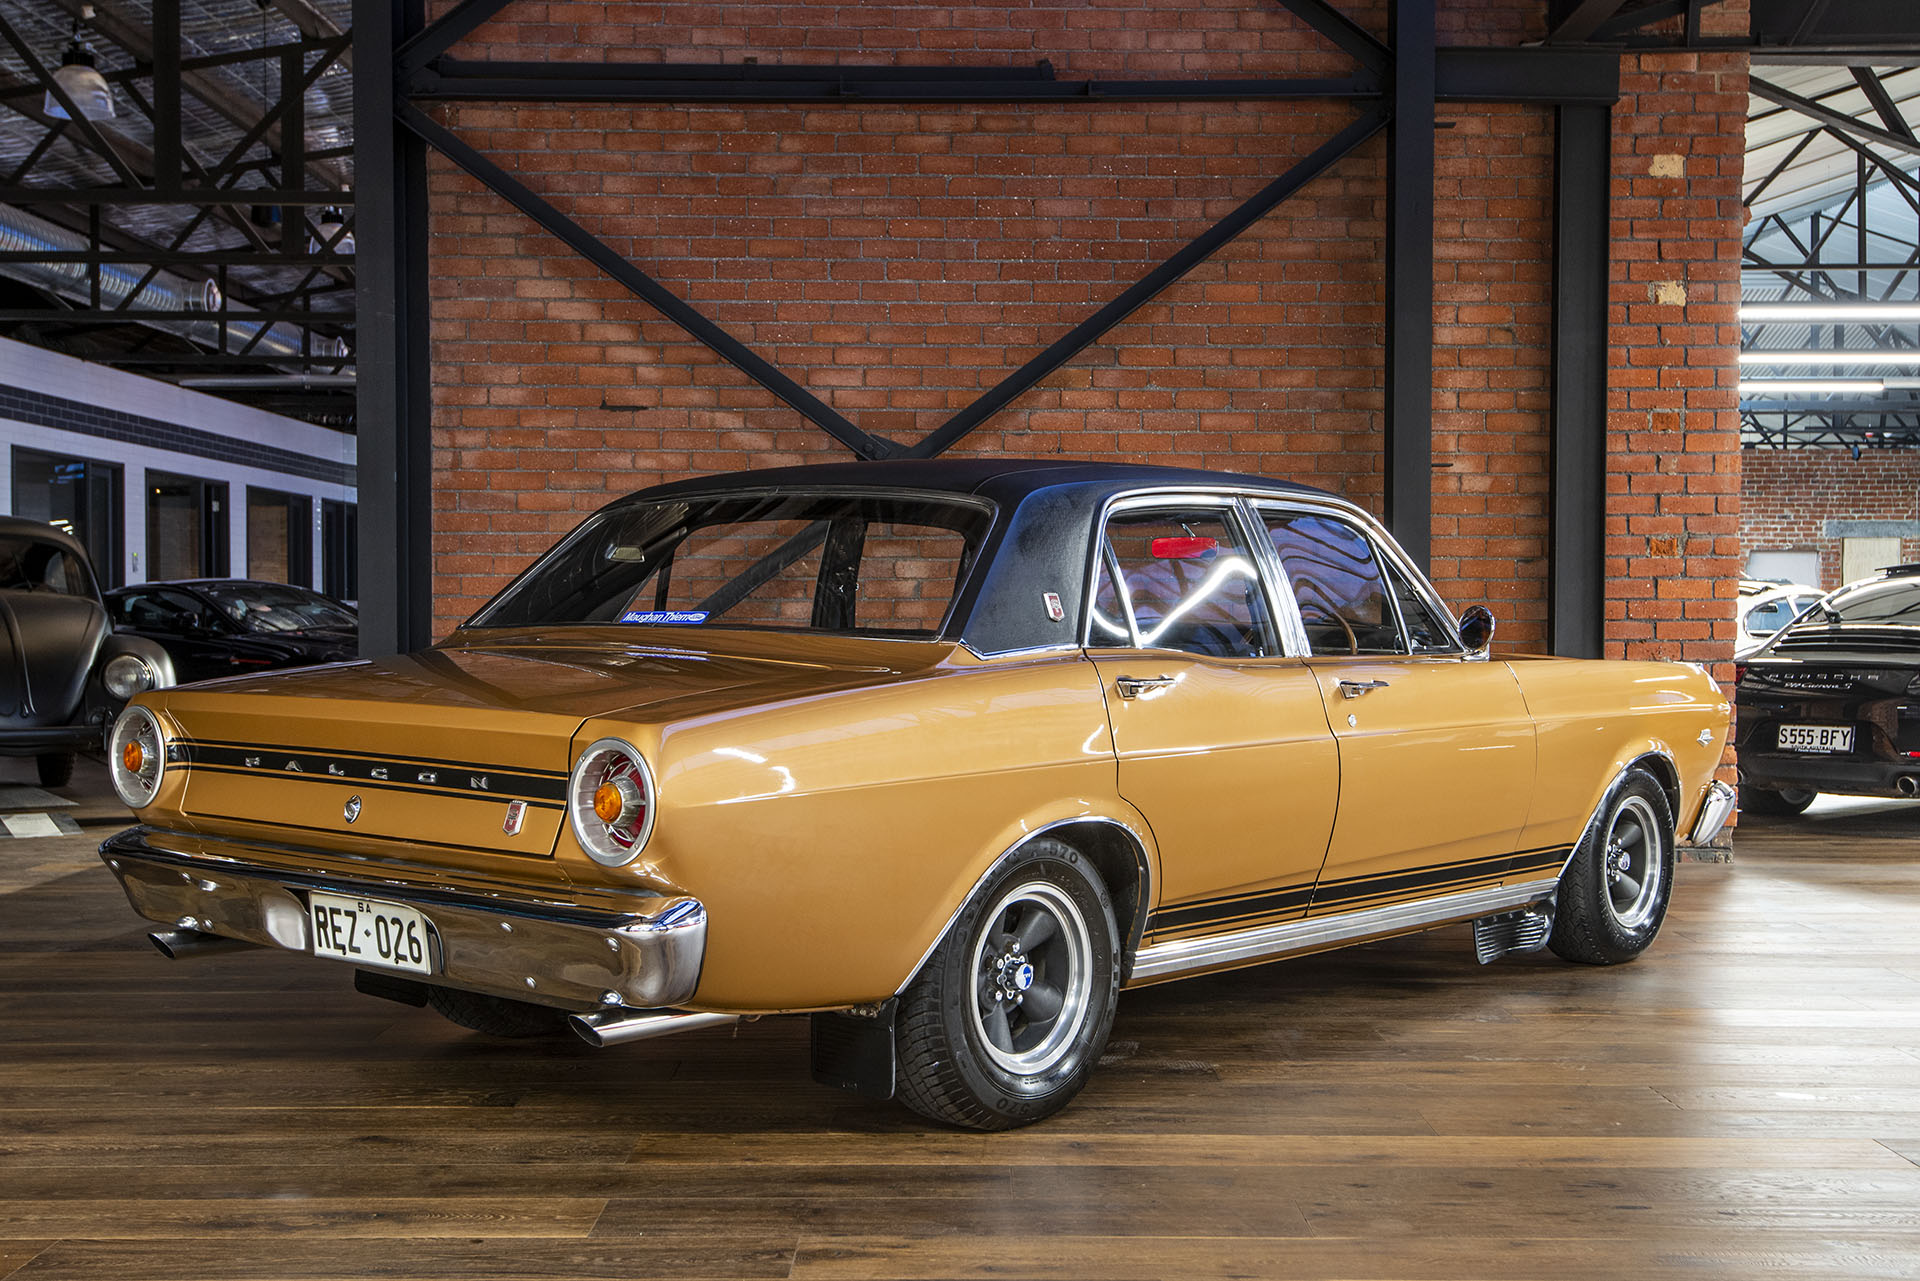 1967 Ford Falcon Xr Gt Richmonds Classic And Prestige